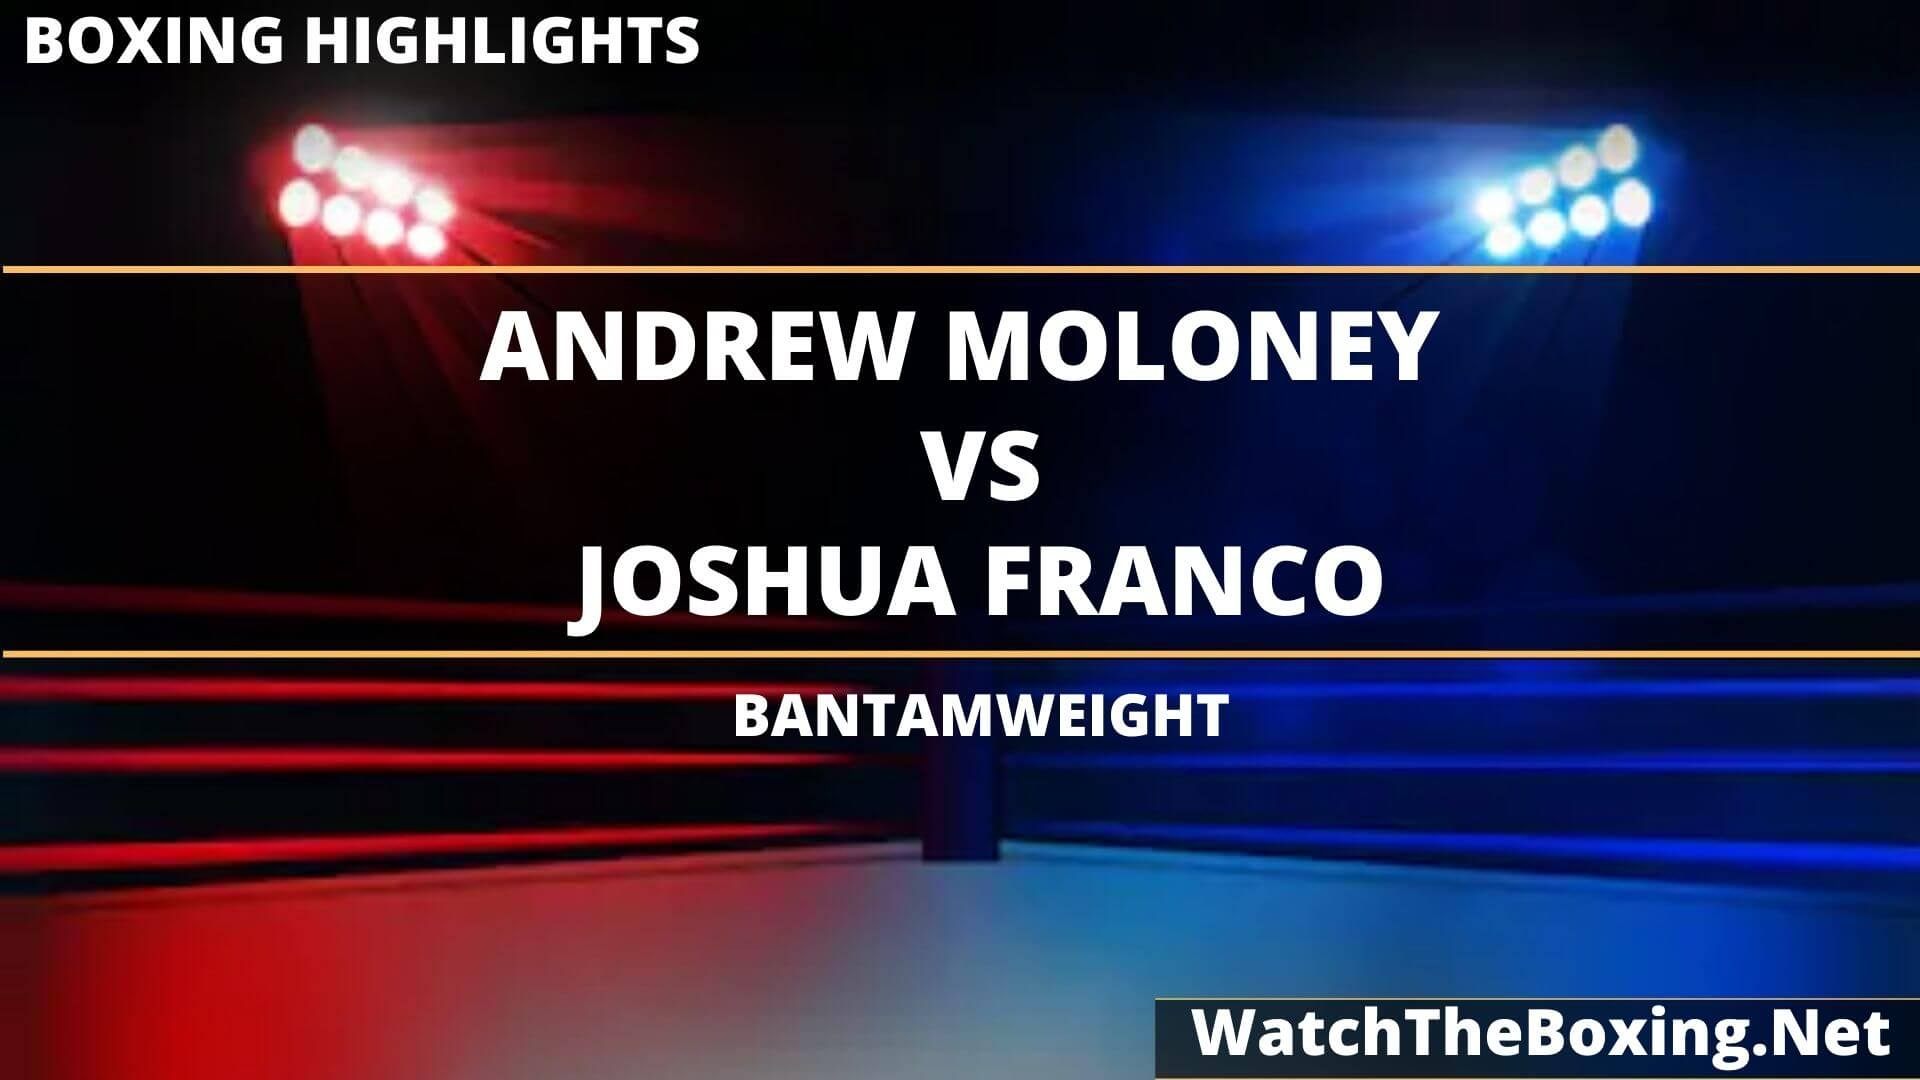 Andrew Moloney Vs Joshua Franco Highlights 2020 Lightweight